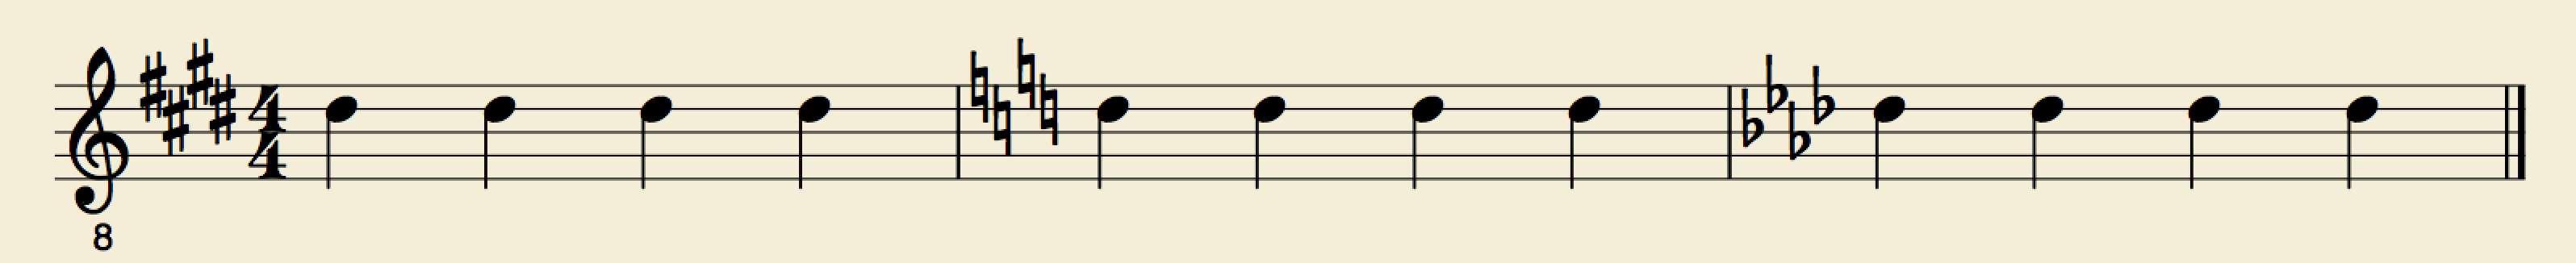 musescore how to change key